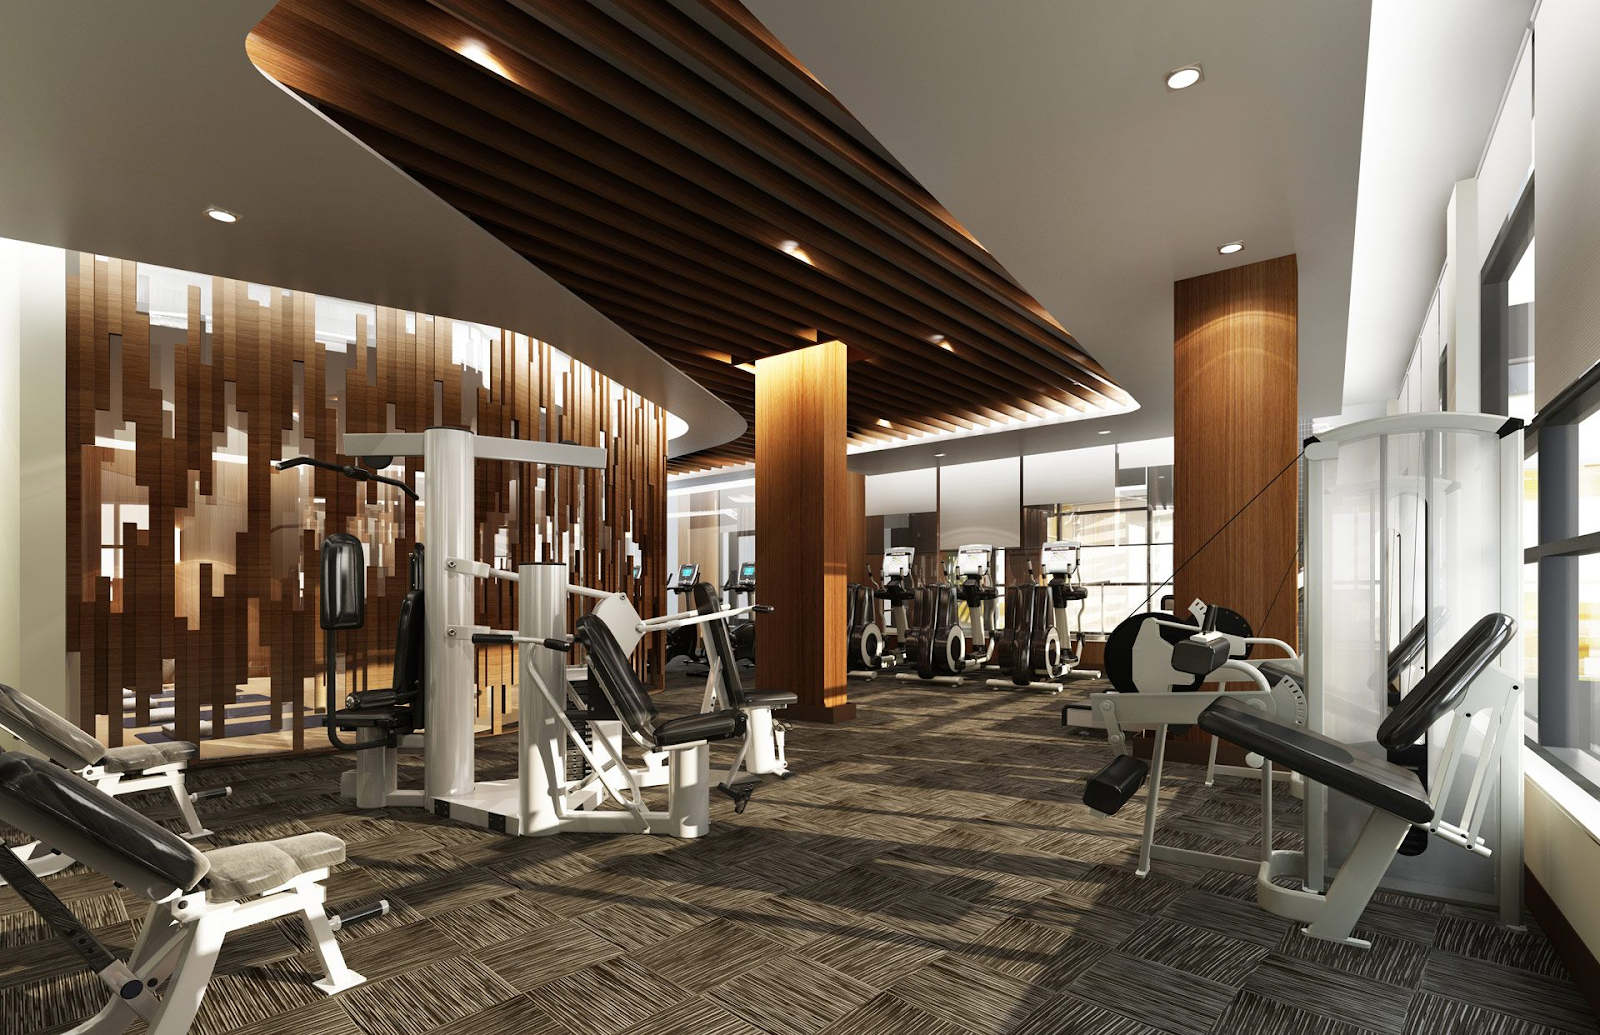 Gym-Rendering-and-what-you-can-earn-from-rendering-fitness?-3